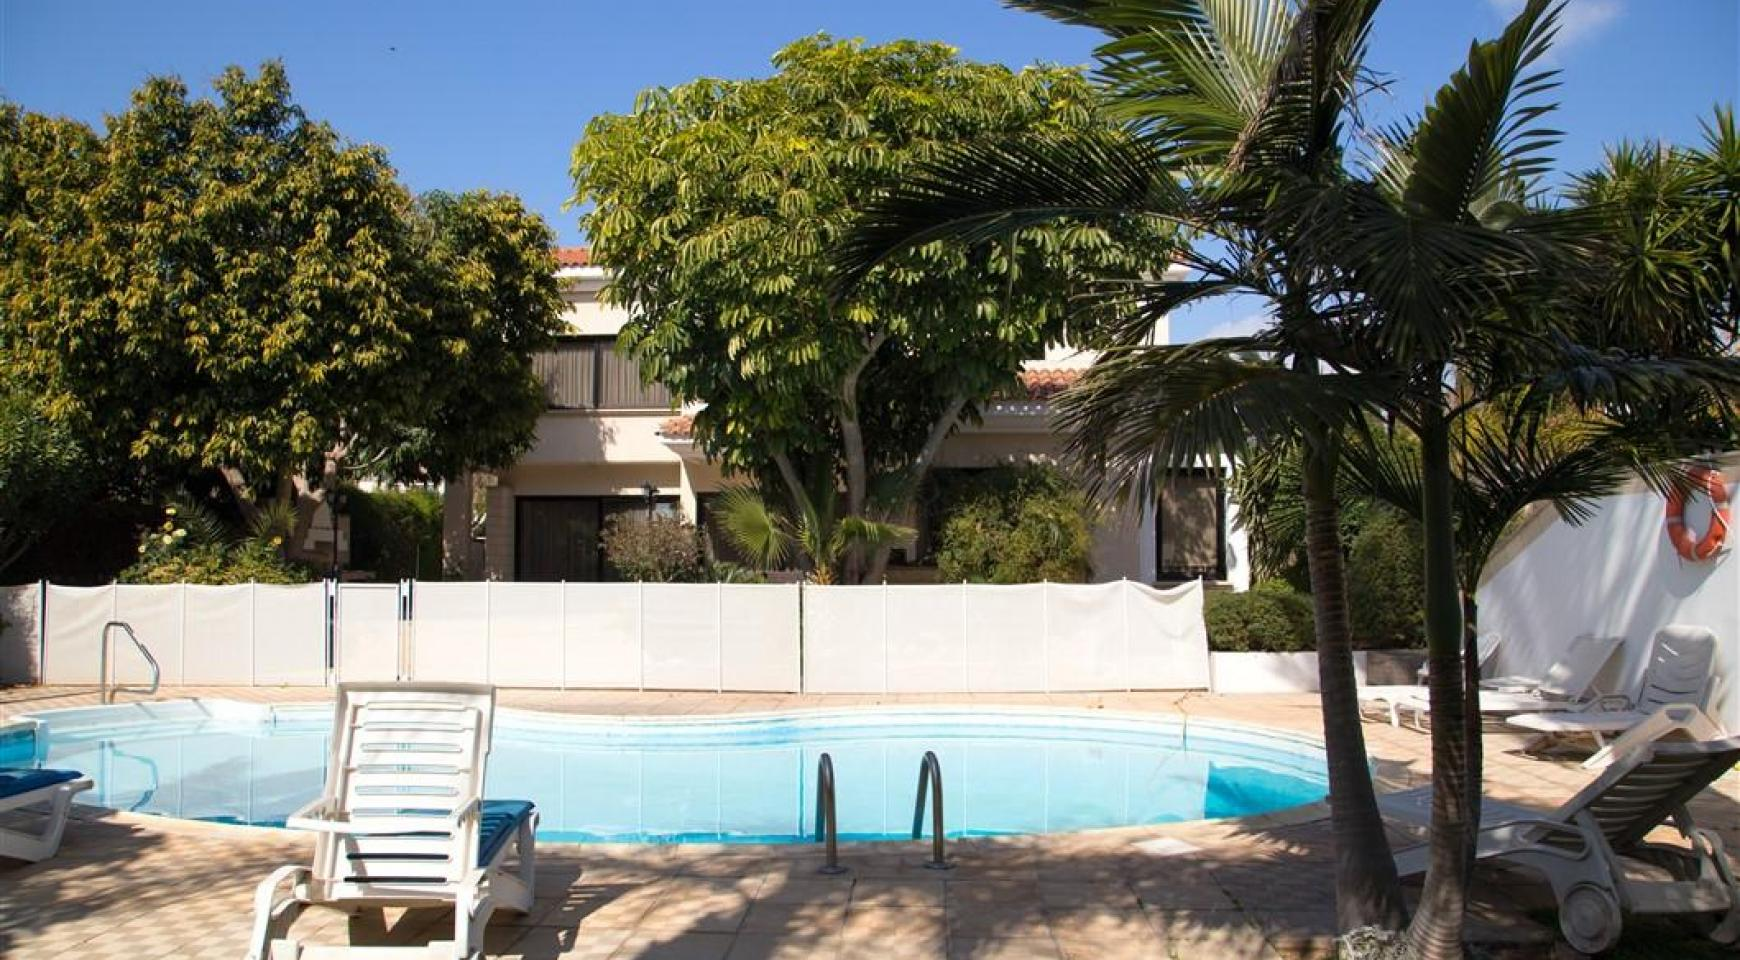 4 Bedroom Villa in Germasogeia Area - 6